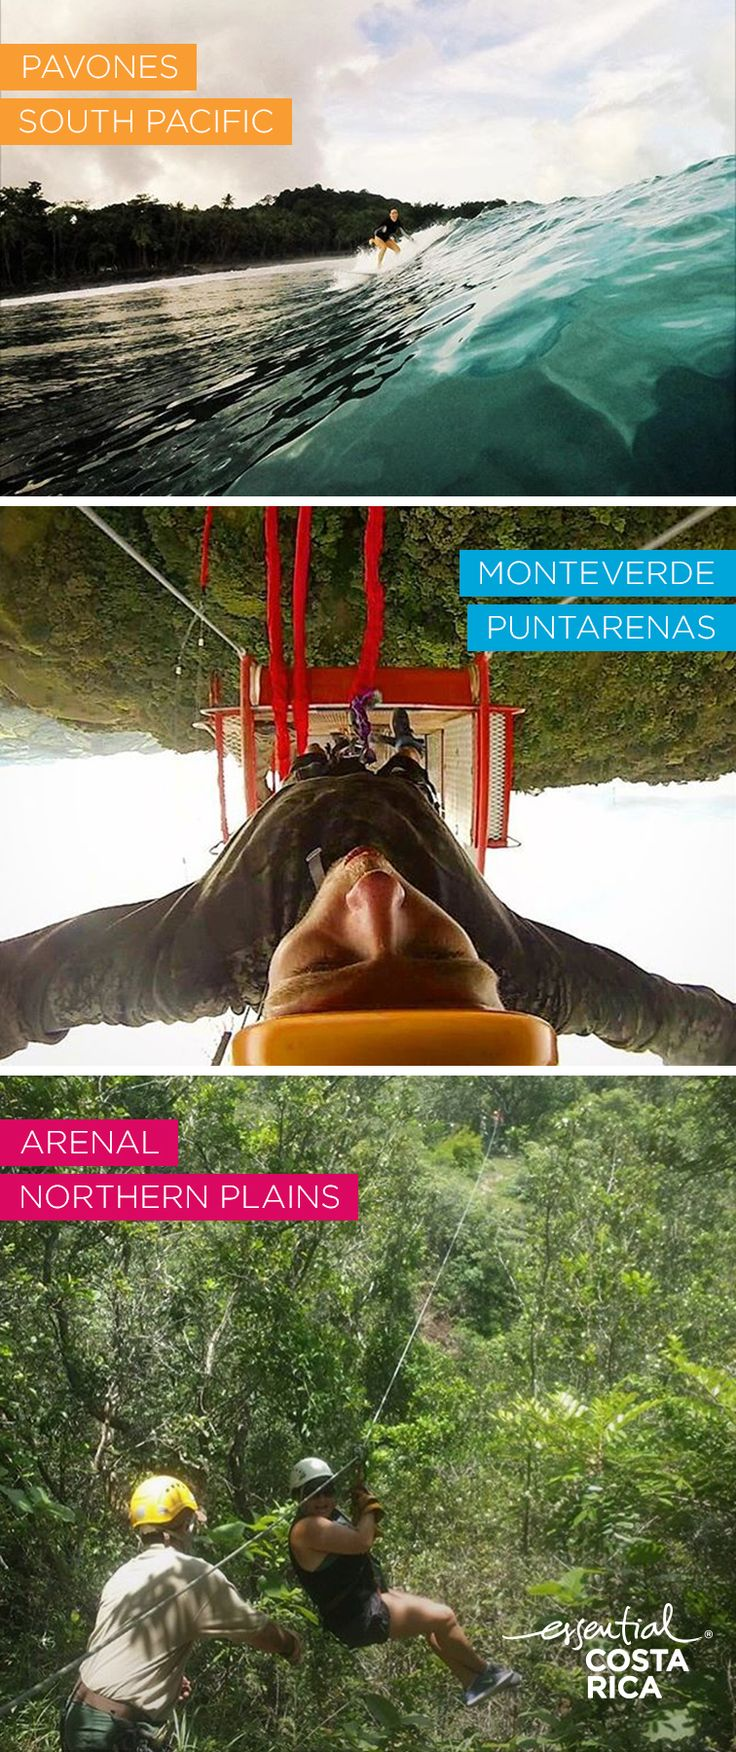 Adventure takes on a whole new meaning in Costa Rica. And thrill seekers from around the globe are planning trips packed with adrenaline spiking experiences. Zipline through the jungles of Arenal, bungee jump in Montverde and surf the perfect waves of Pavones. And remember...Y.O.L.O.